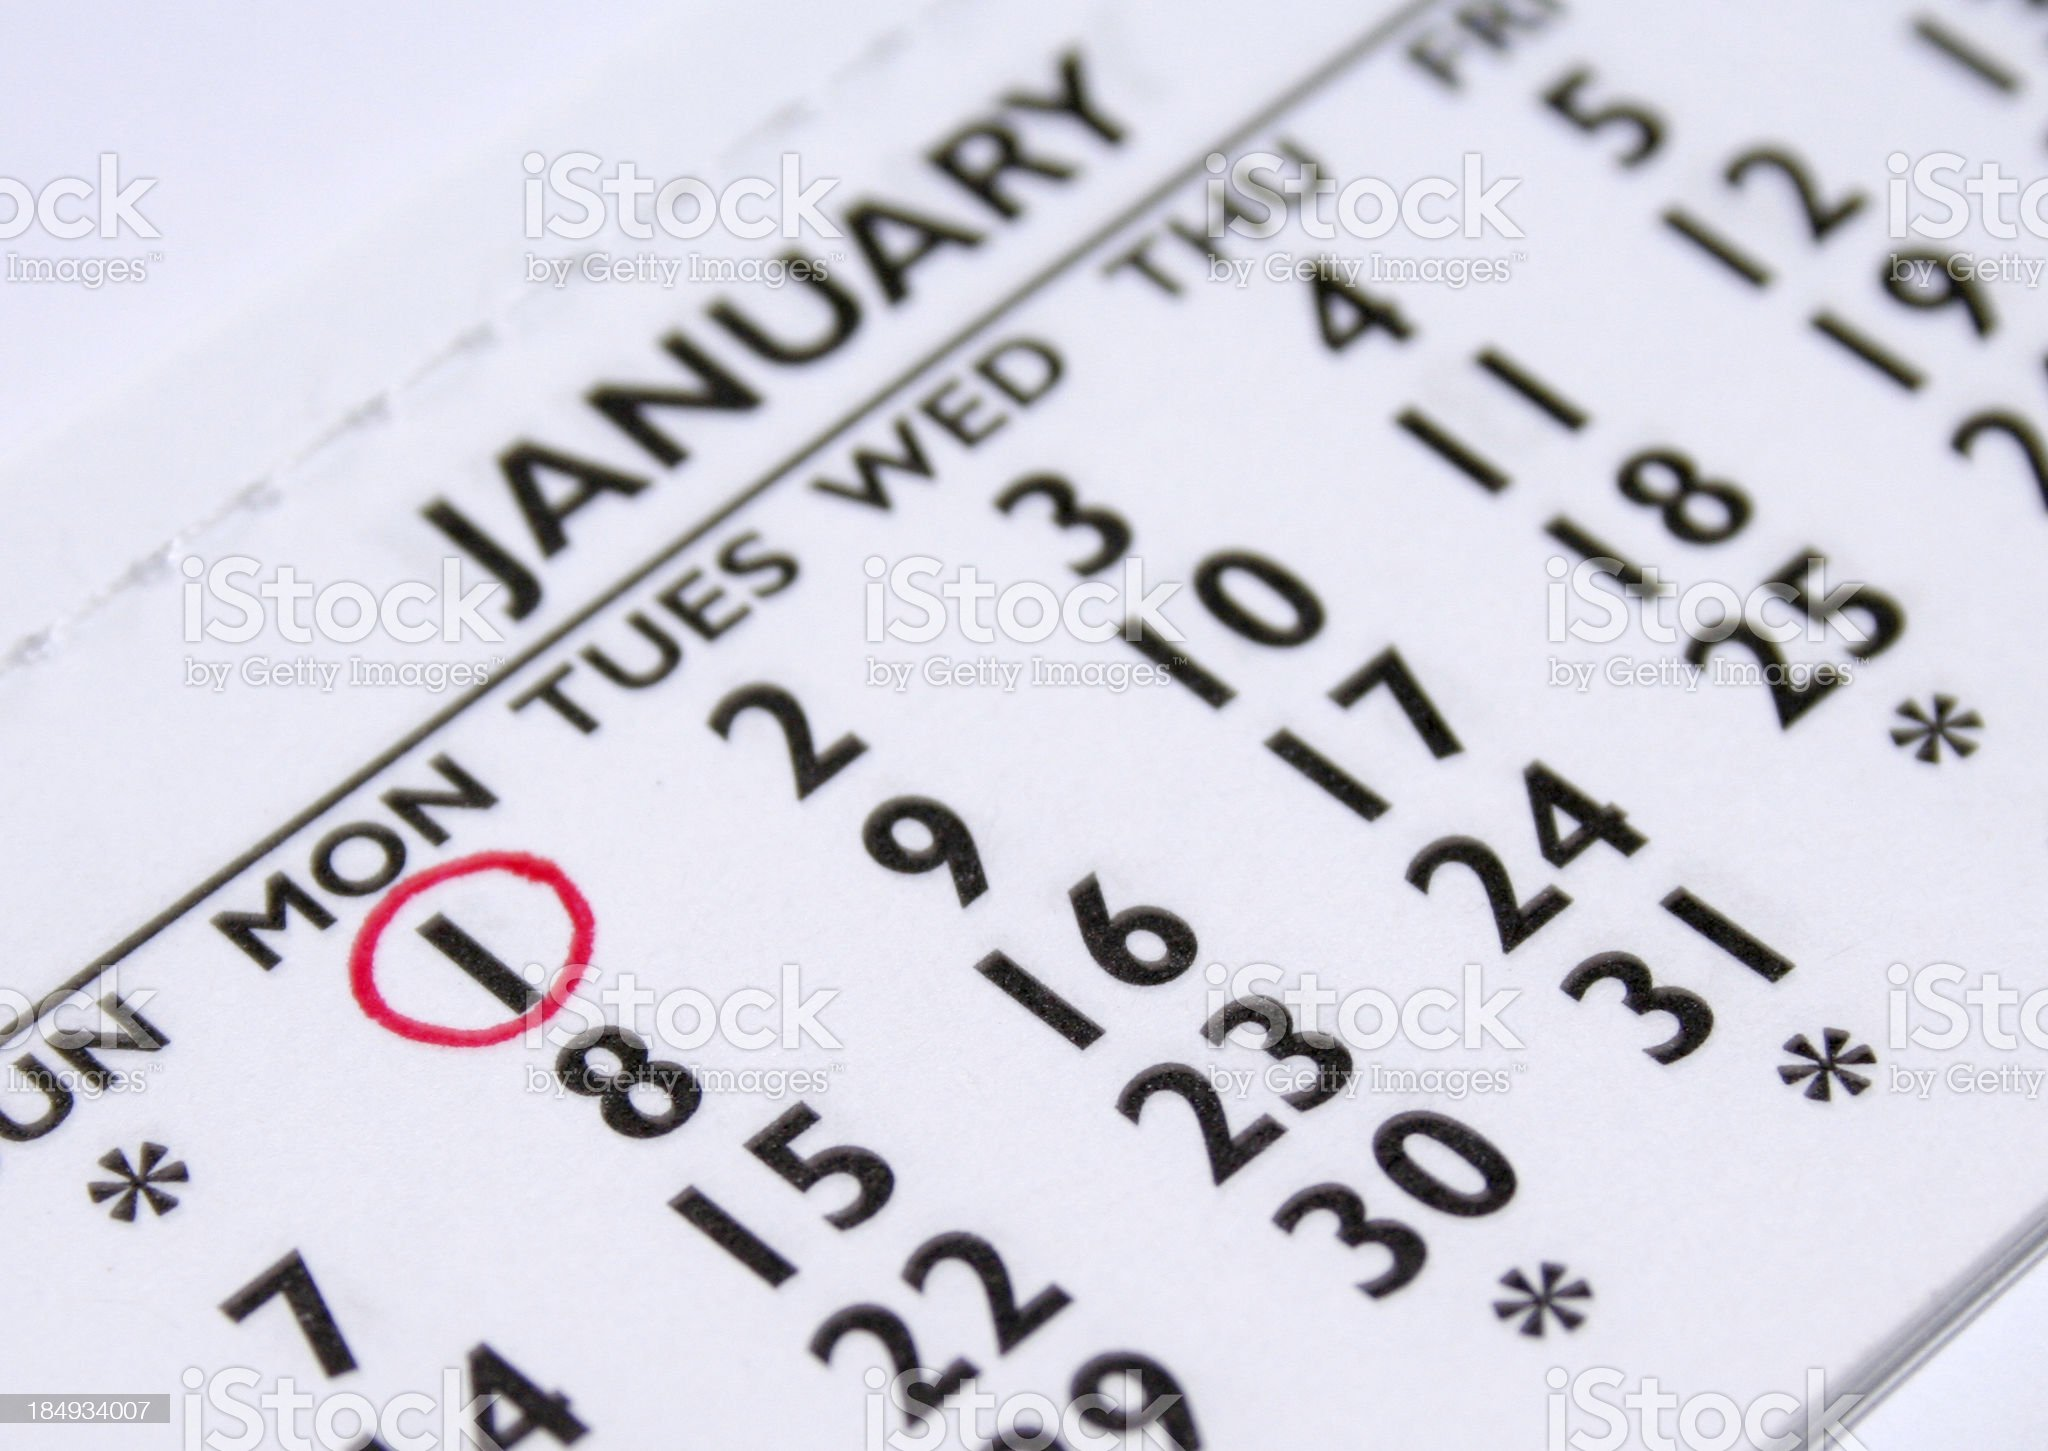 January 1st New Years Day royalty-free stock photo